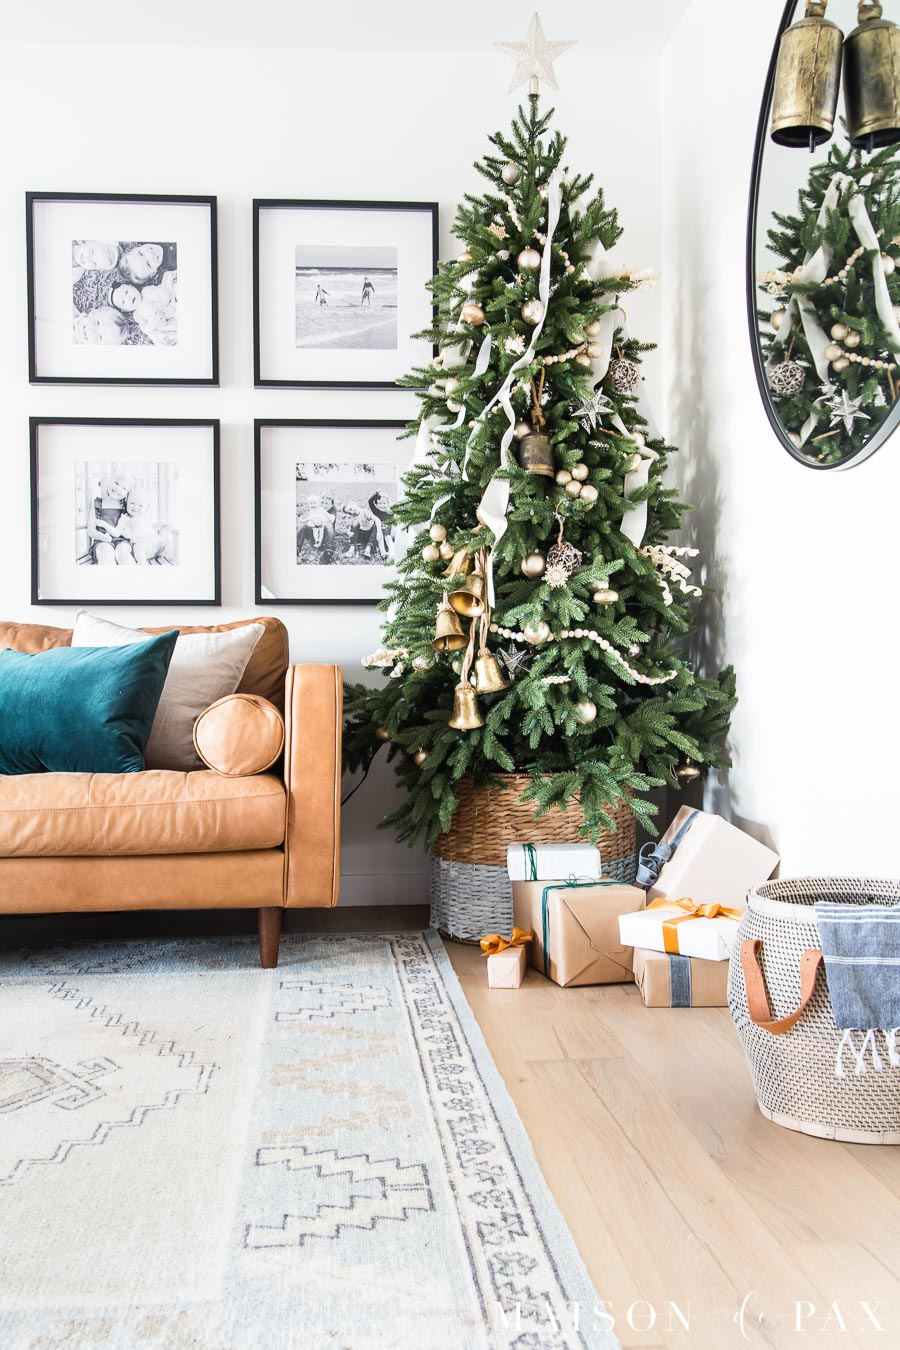 beautifully wrapped presents add to the Christmas decorations | Maison de Pax